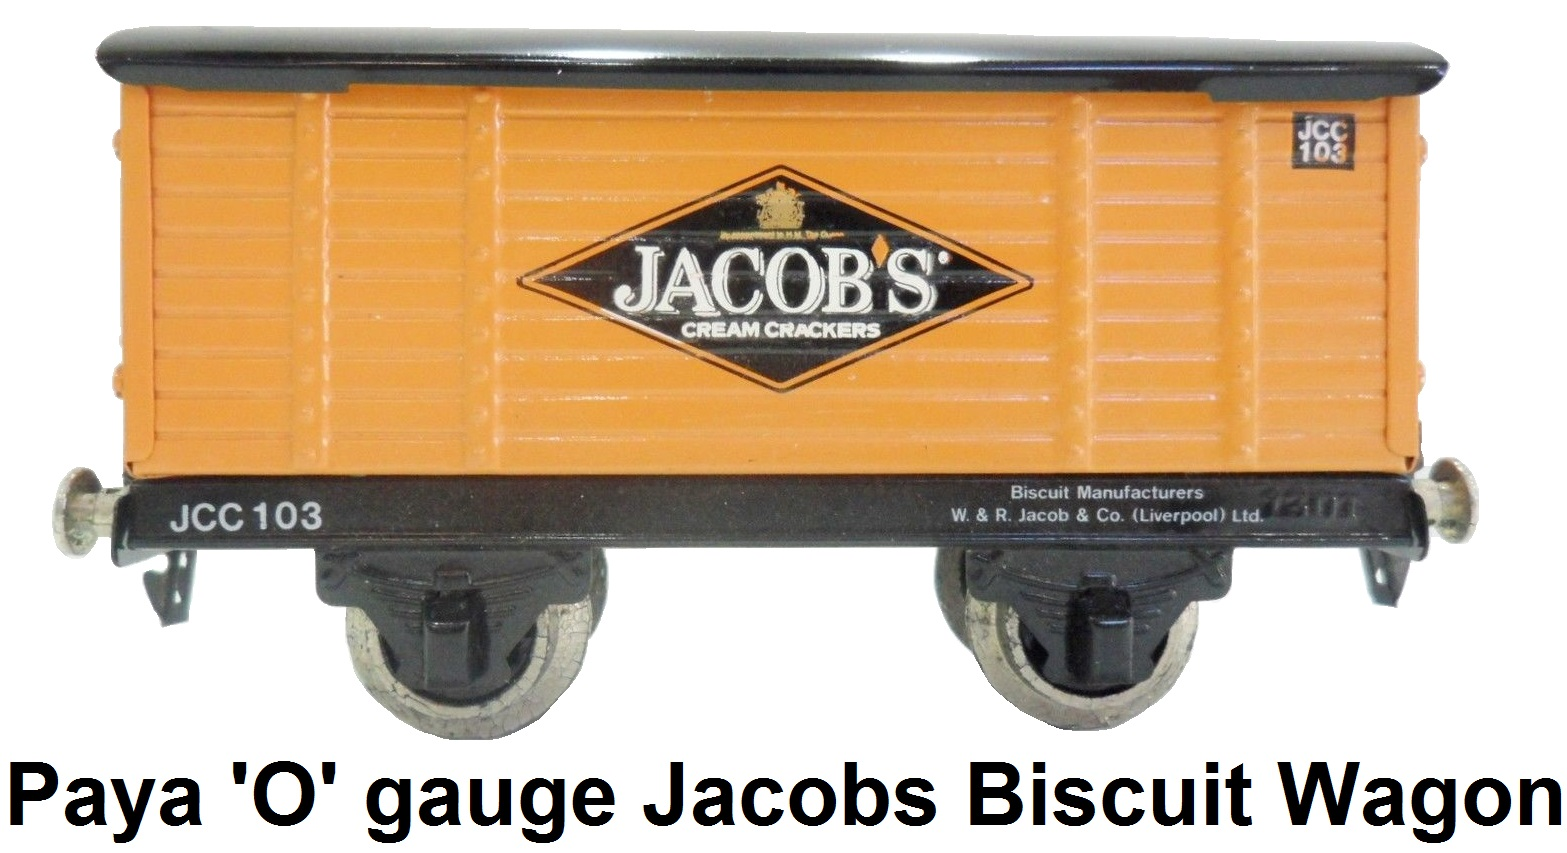 Payá 'O' gauge Jacobs Biscuit Wagon